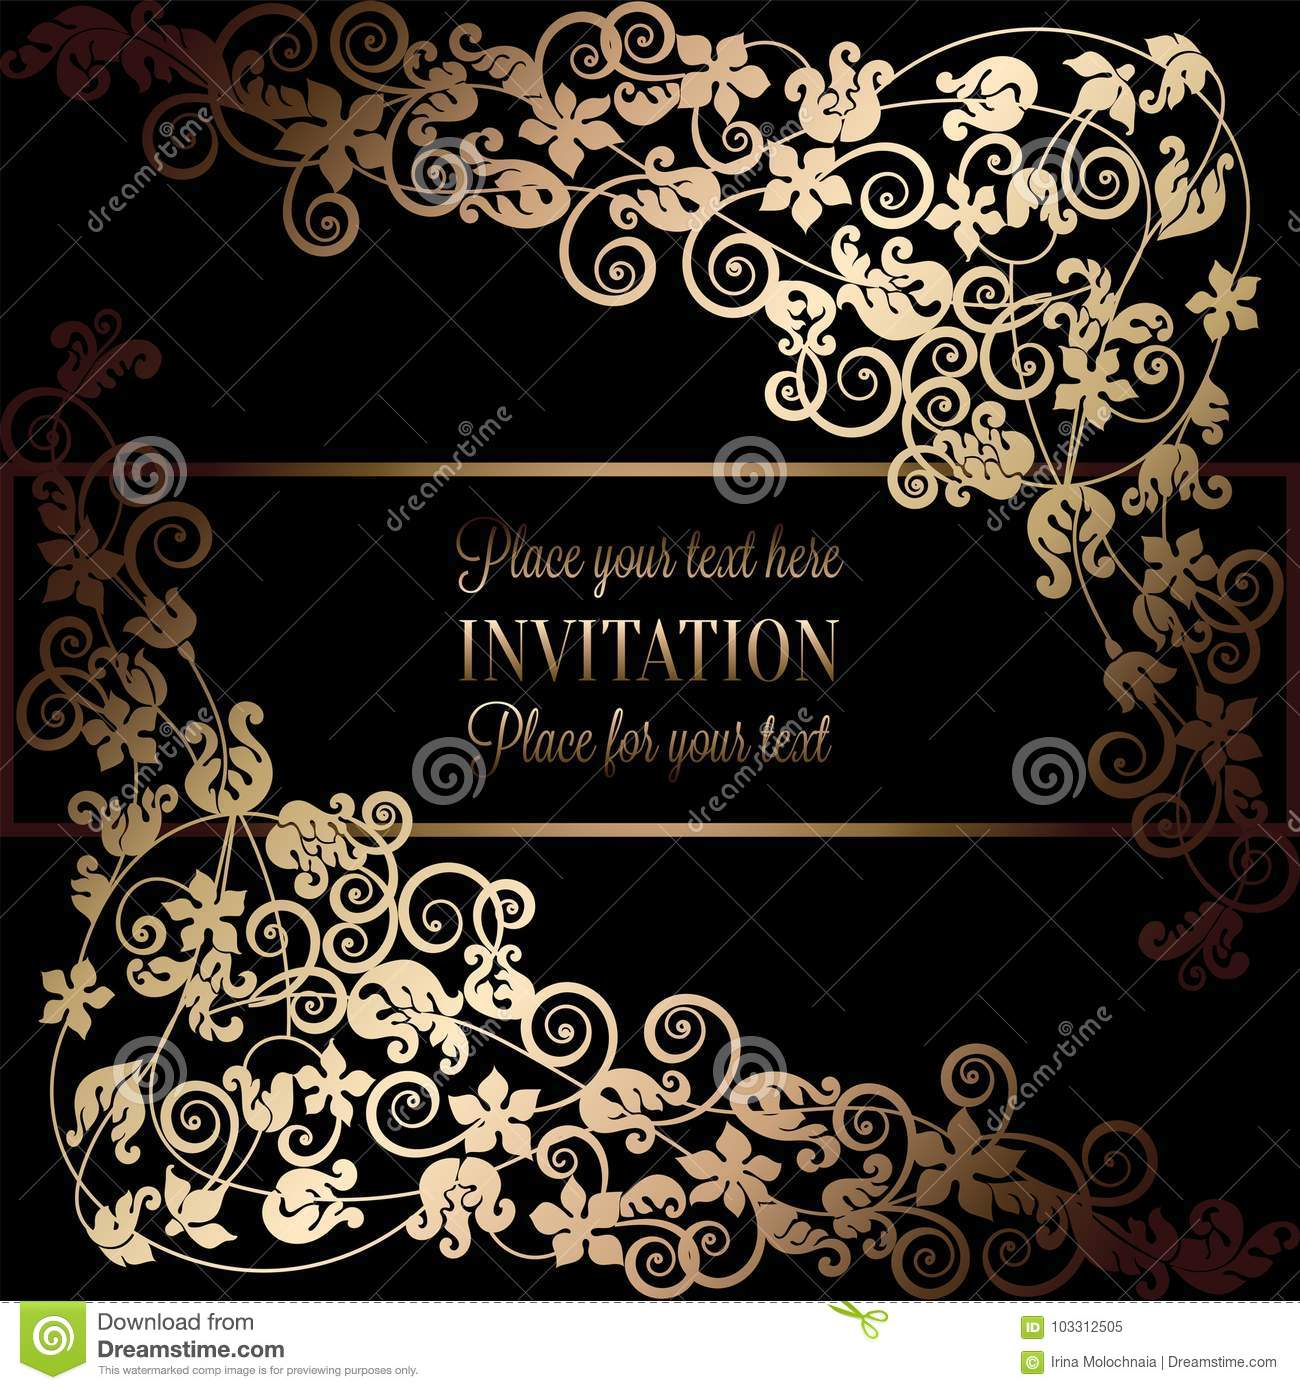 Floral Background With Antique Luxury Black And Gold Vintage